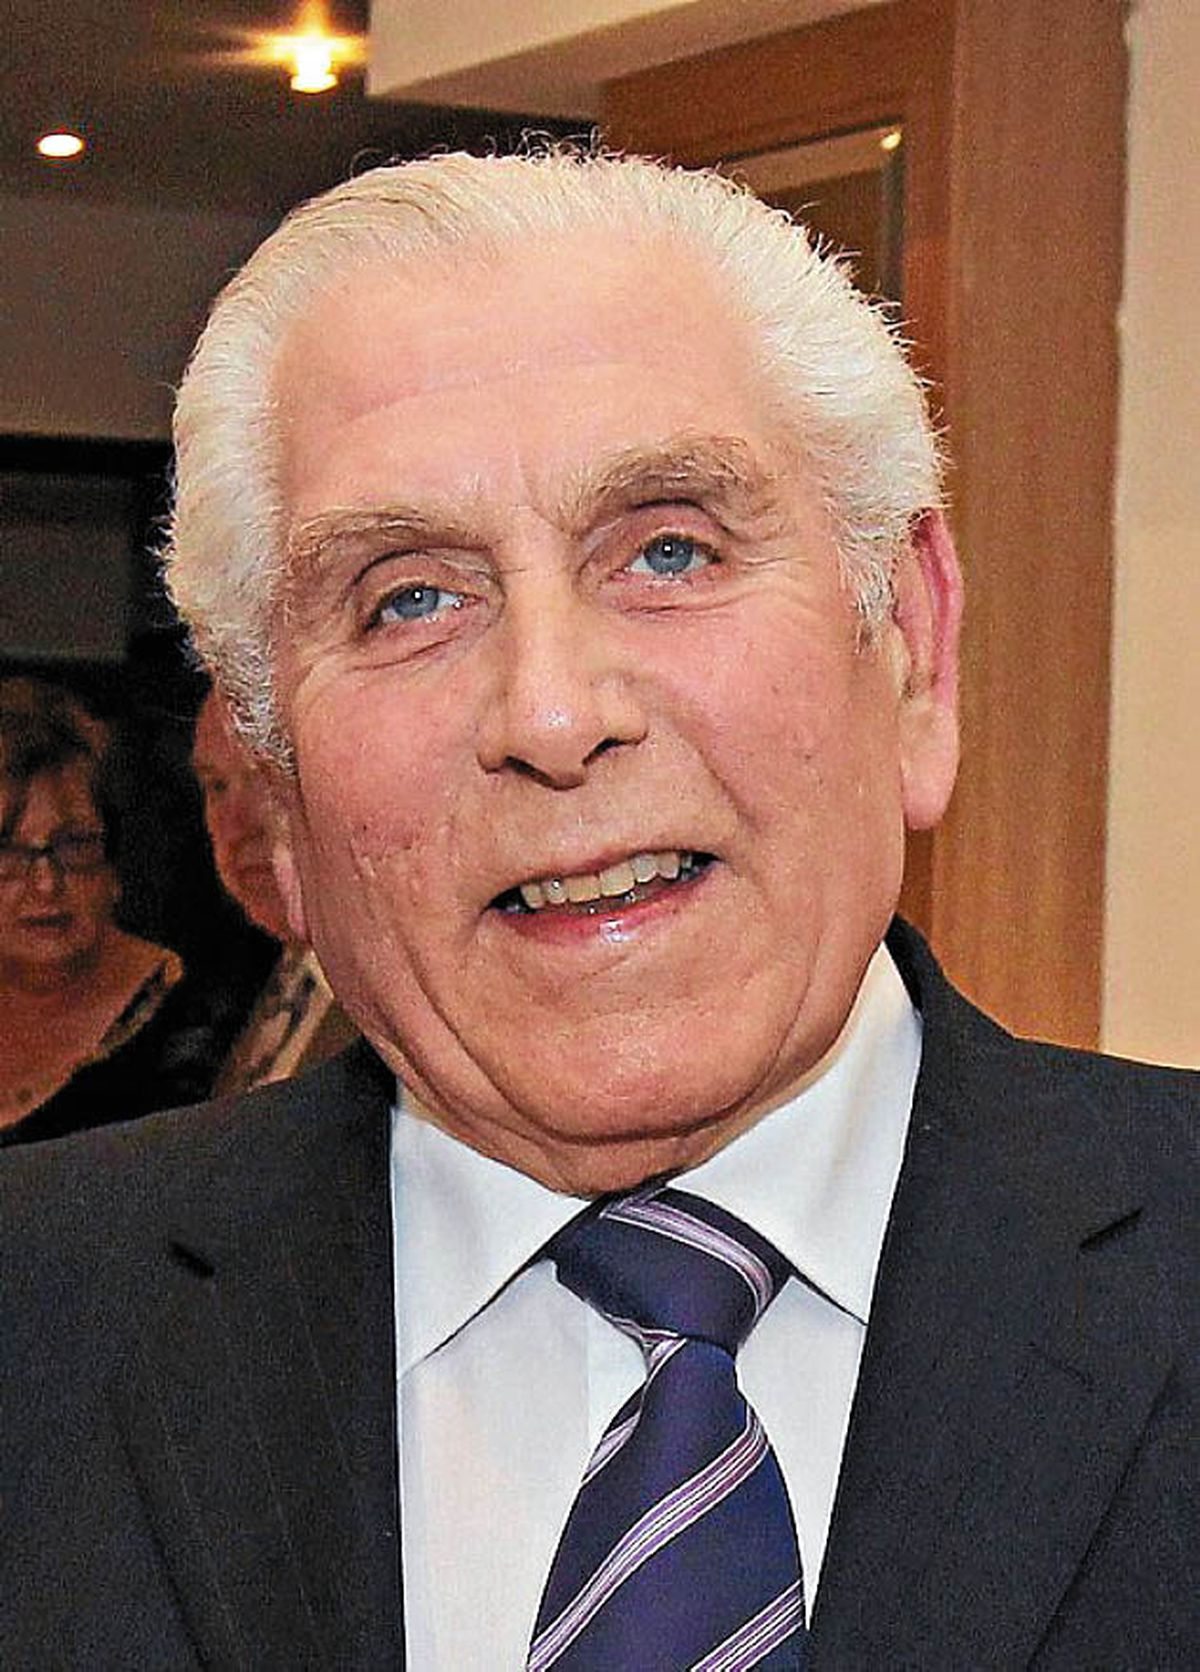 Lord Bilston Dennis Turner, who died in 2015